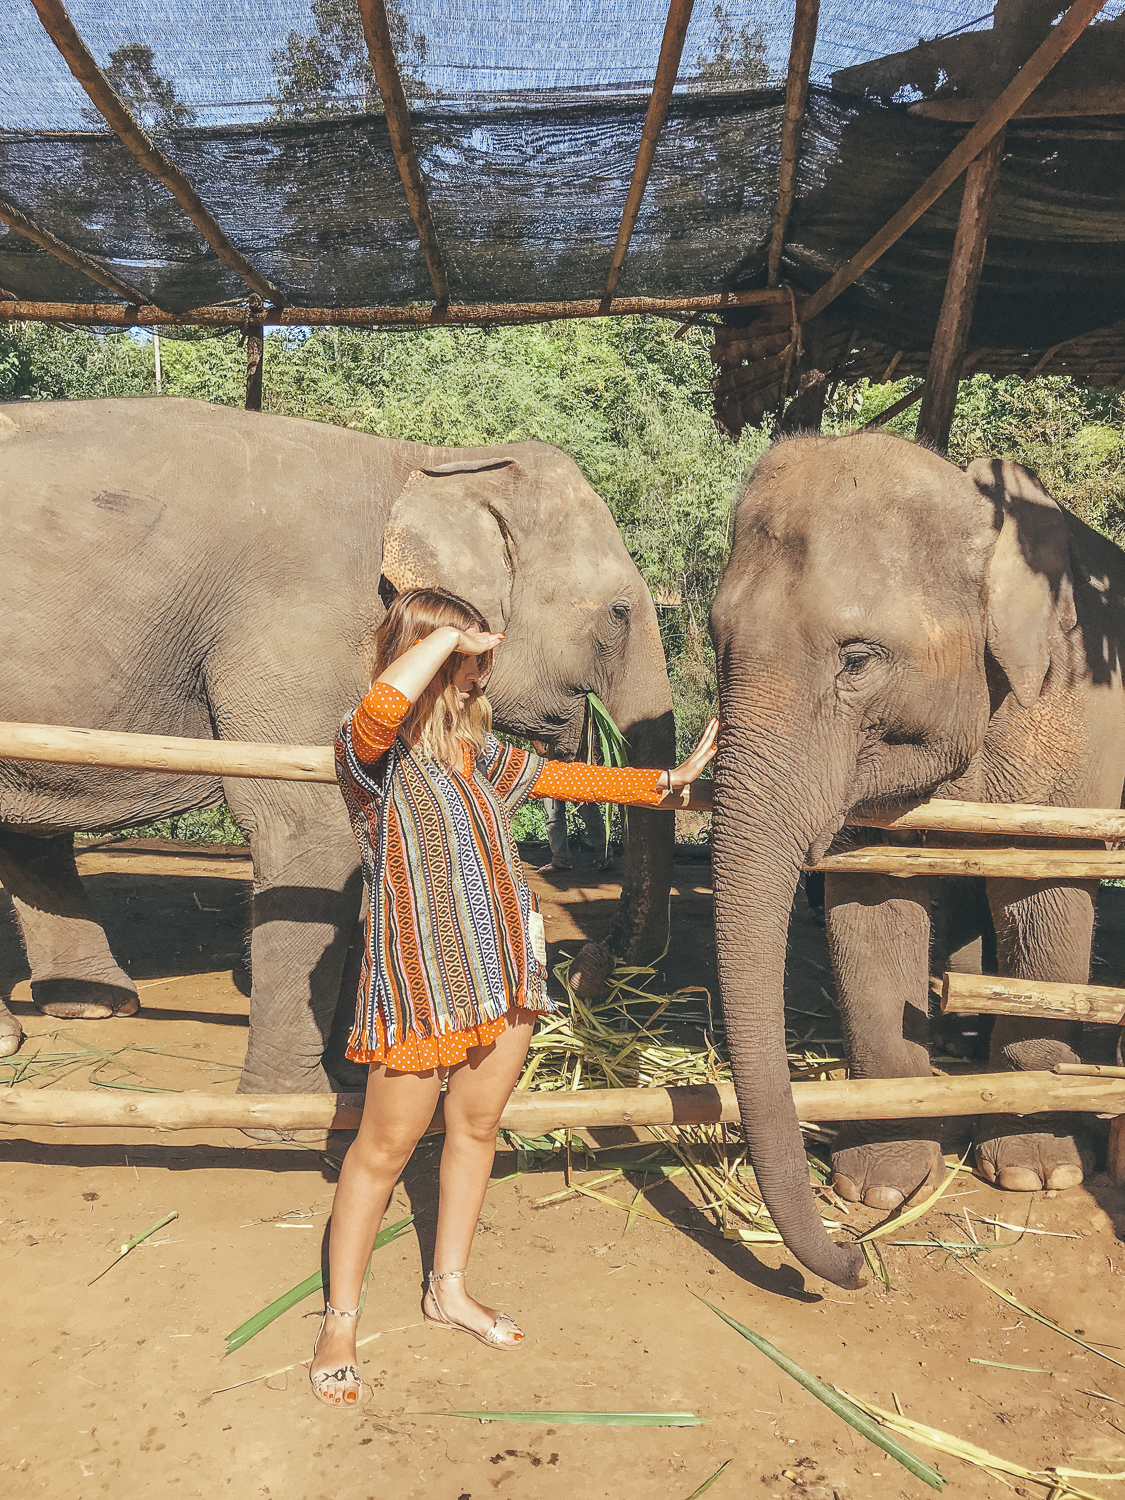 A day well spent at the Elephant Sanctuary Chiang Mai